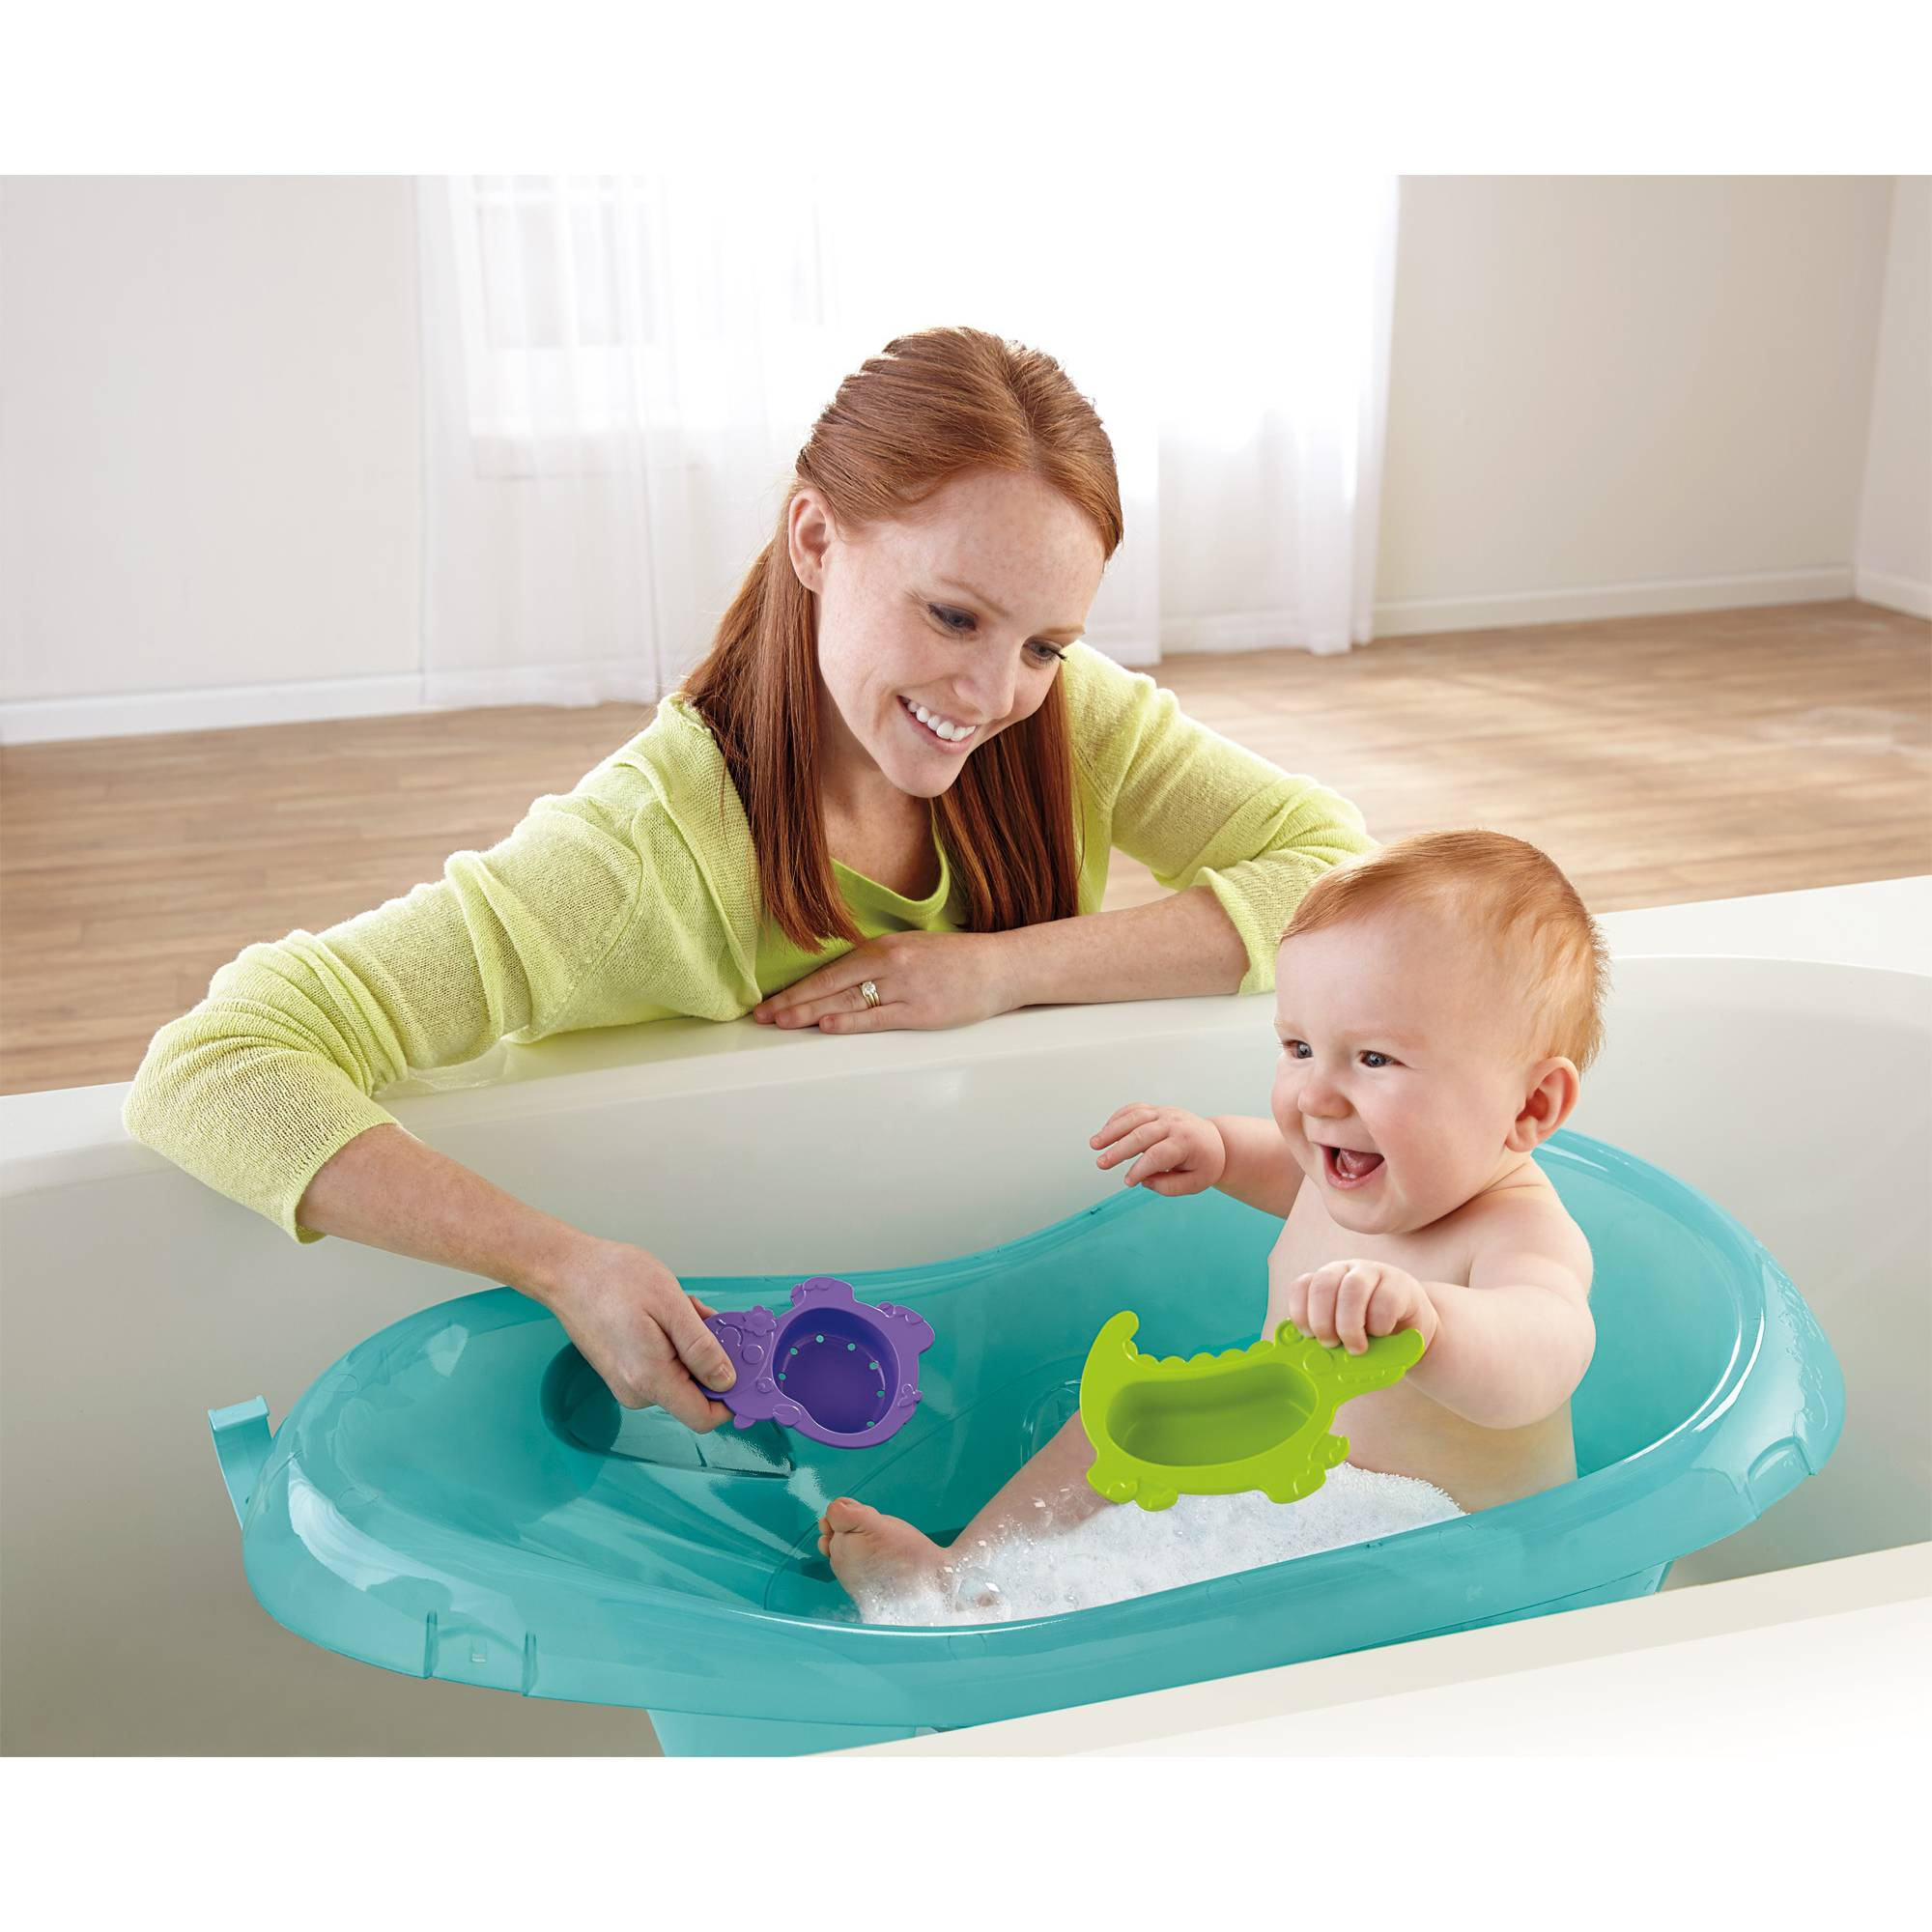 Fisher-Price Rainforest Friends Tub, Green - Walmart.com